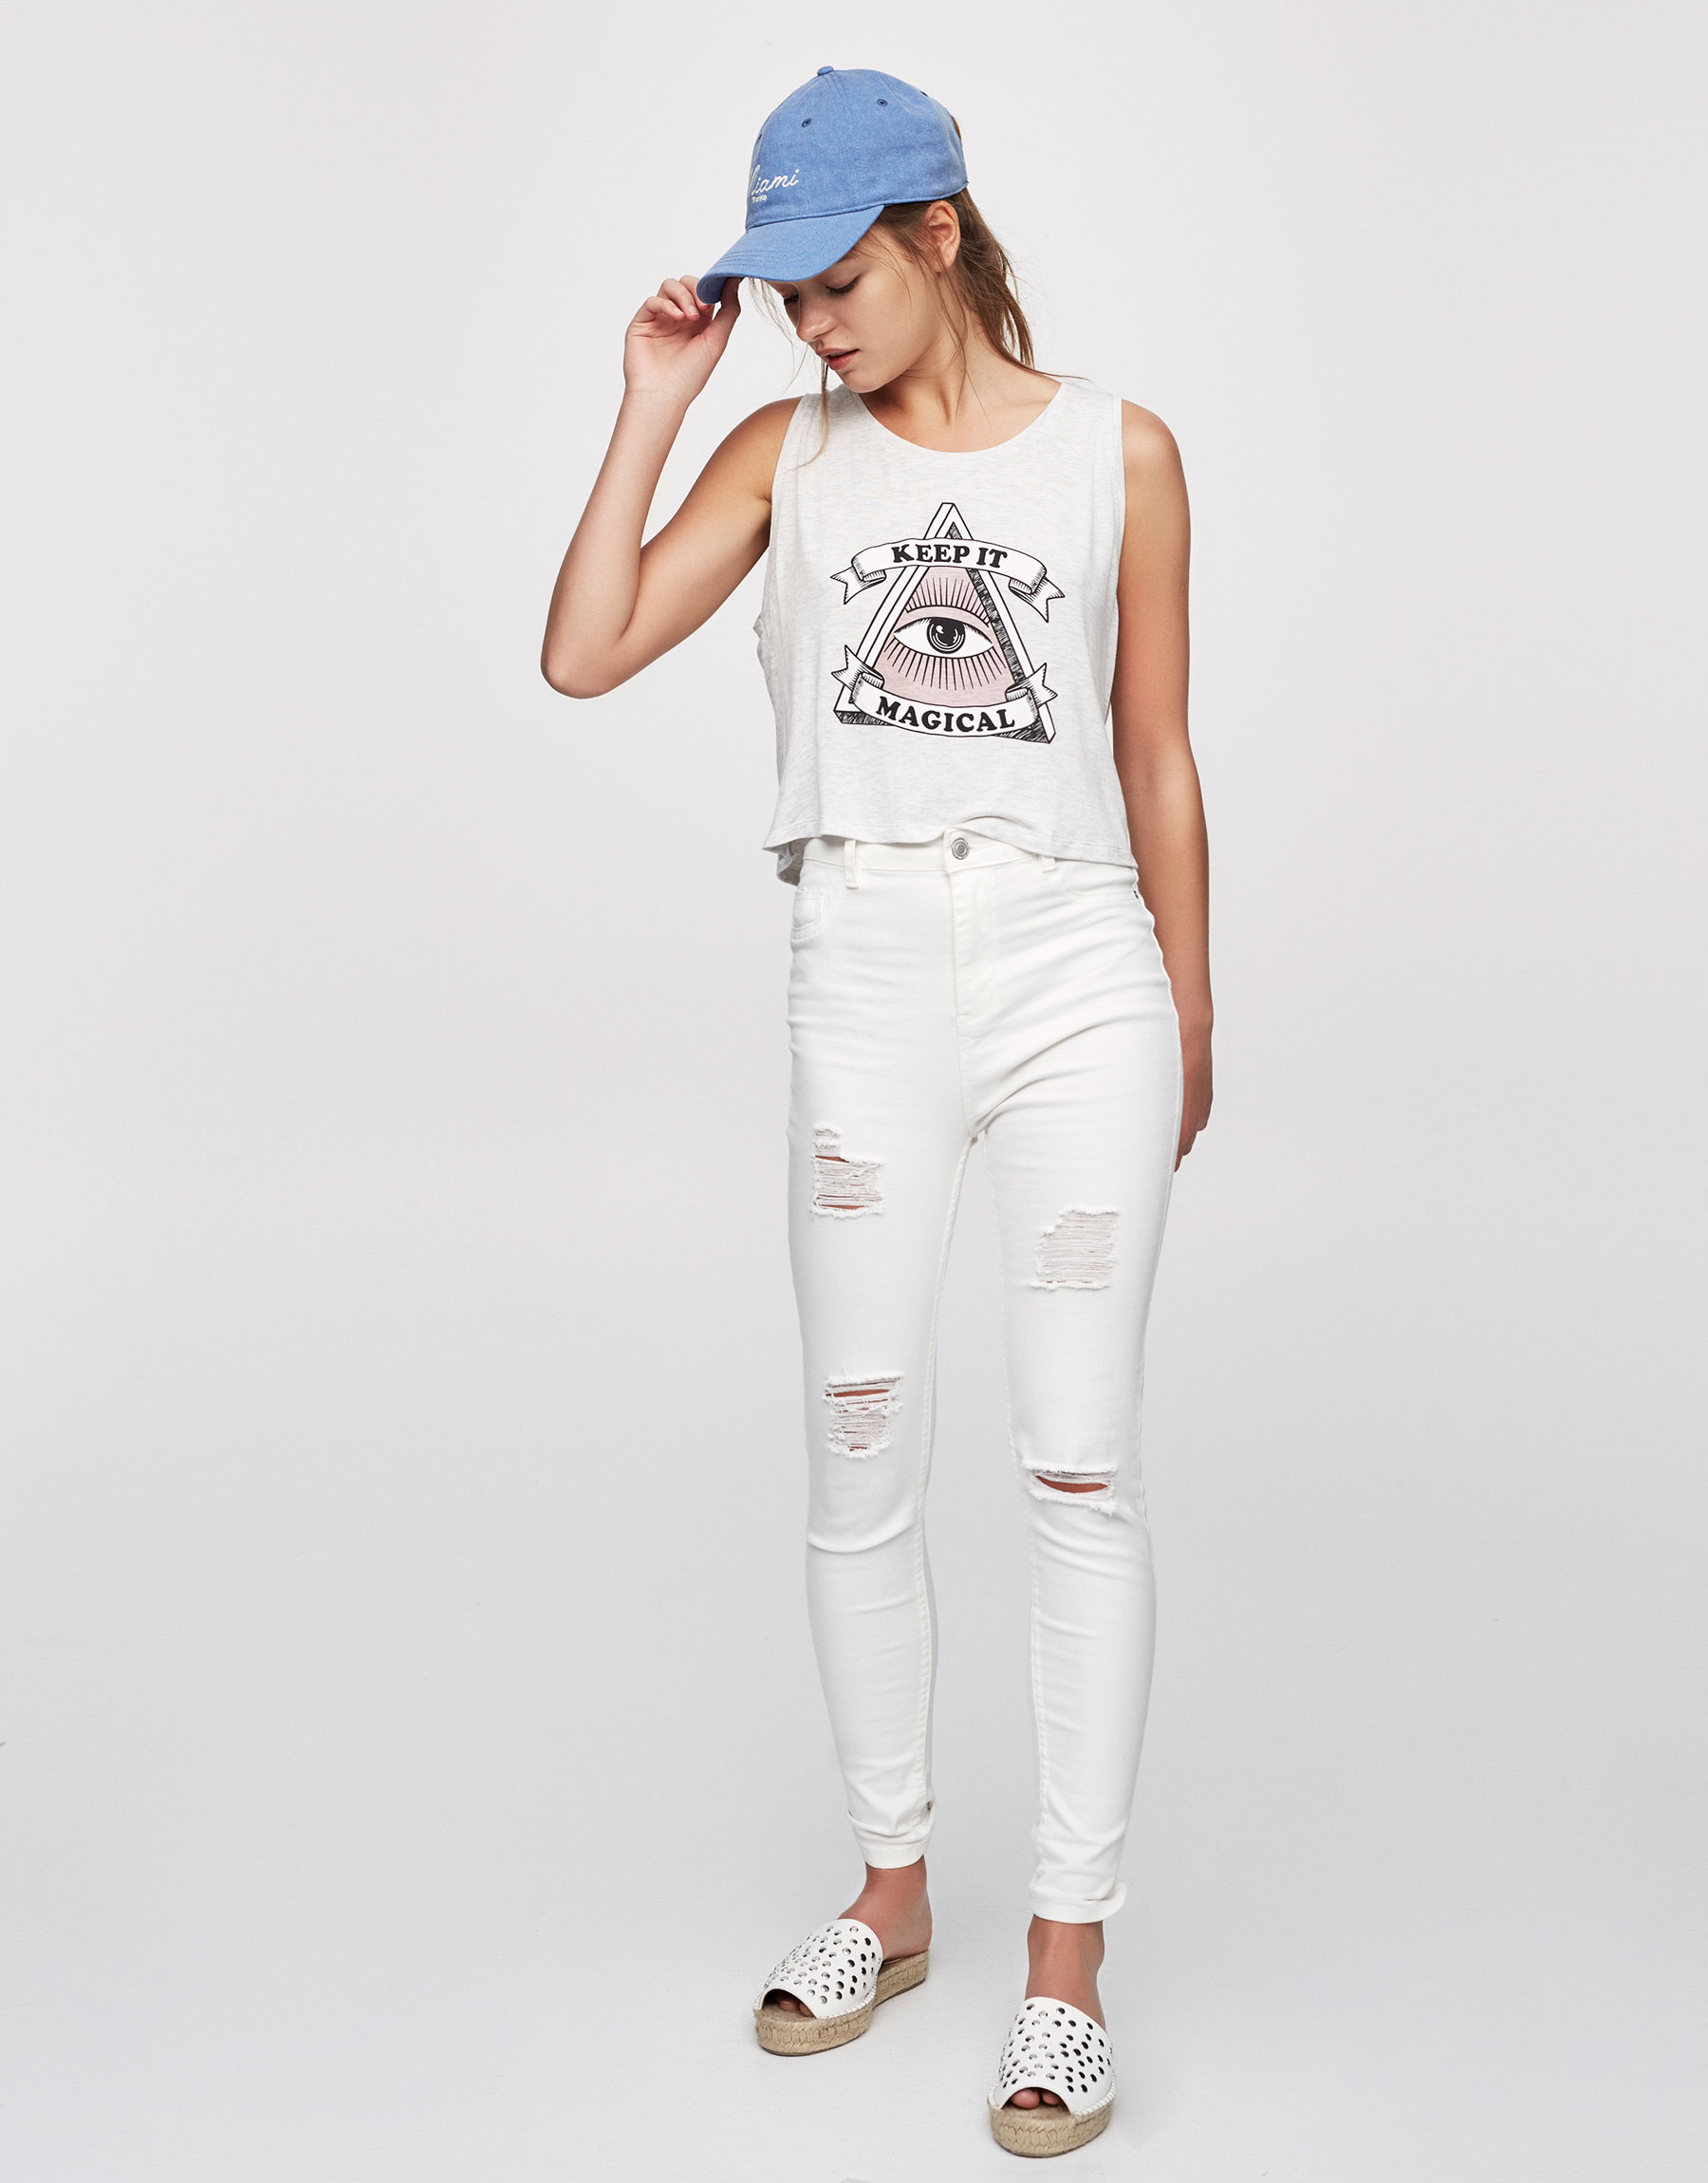 Sleeveless T-shirt with graphic